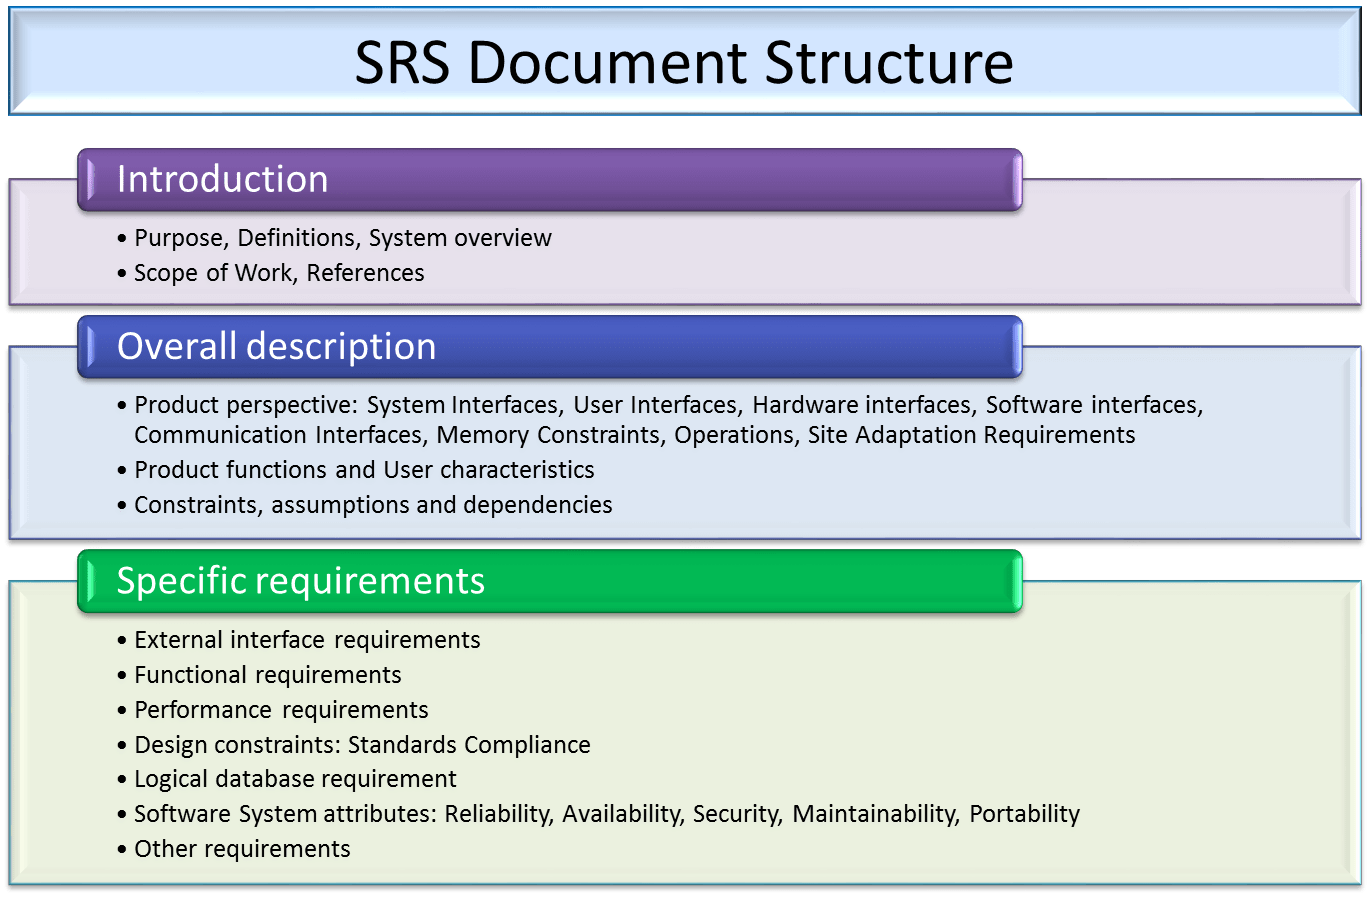 System Requirement Document Template Figure 2 An Example Mapping Matrix Google Images Dm Software Checklist Fit Gap Analysis Select Dms Figure 2 Pbs Example For The Sofia Infrared Telescope Template To Write